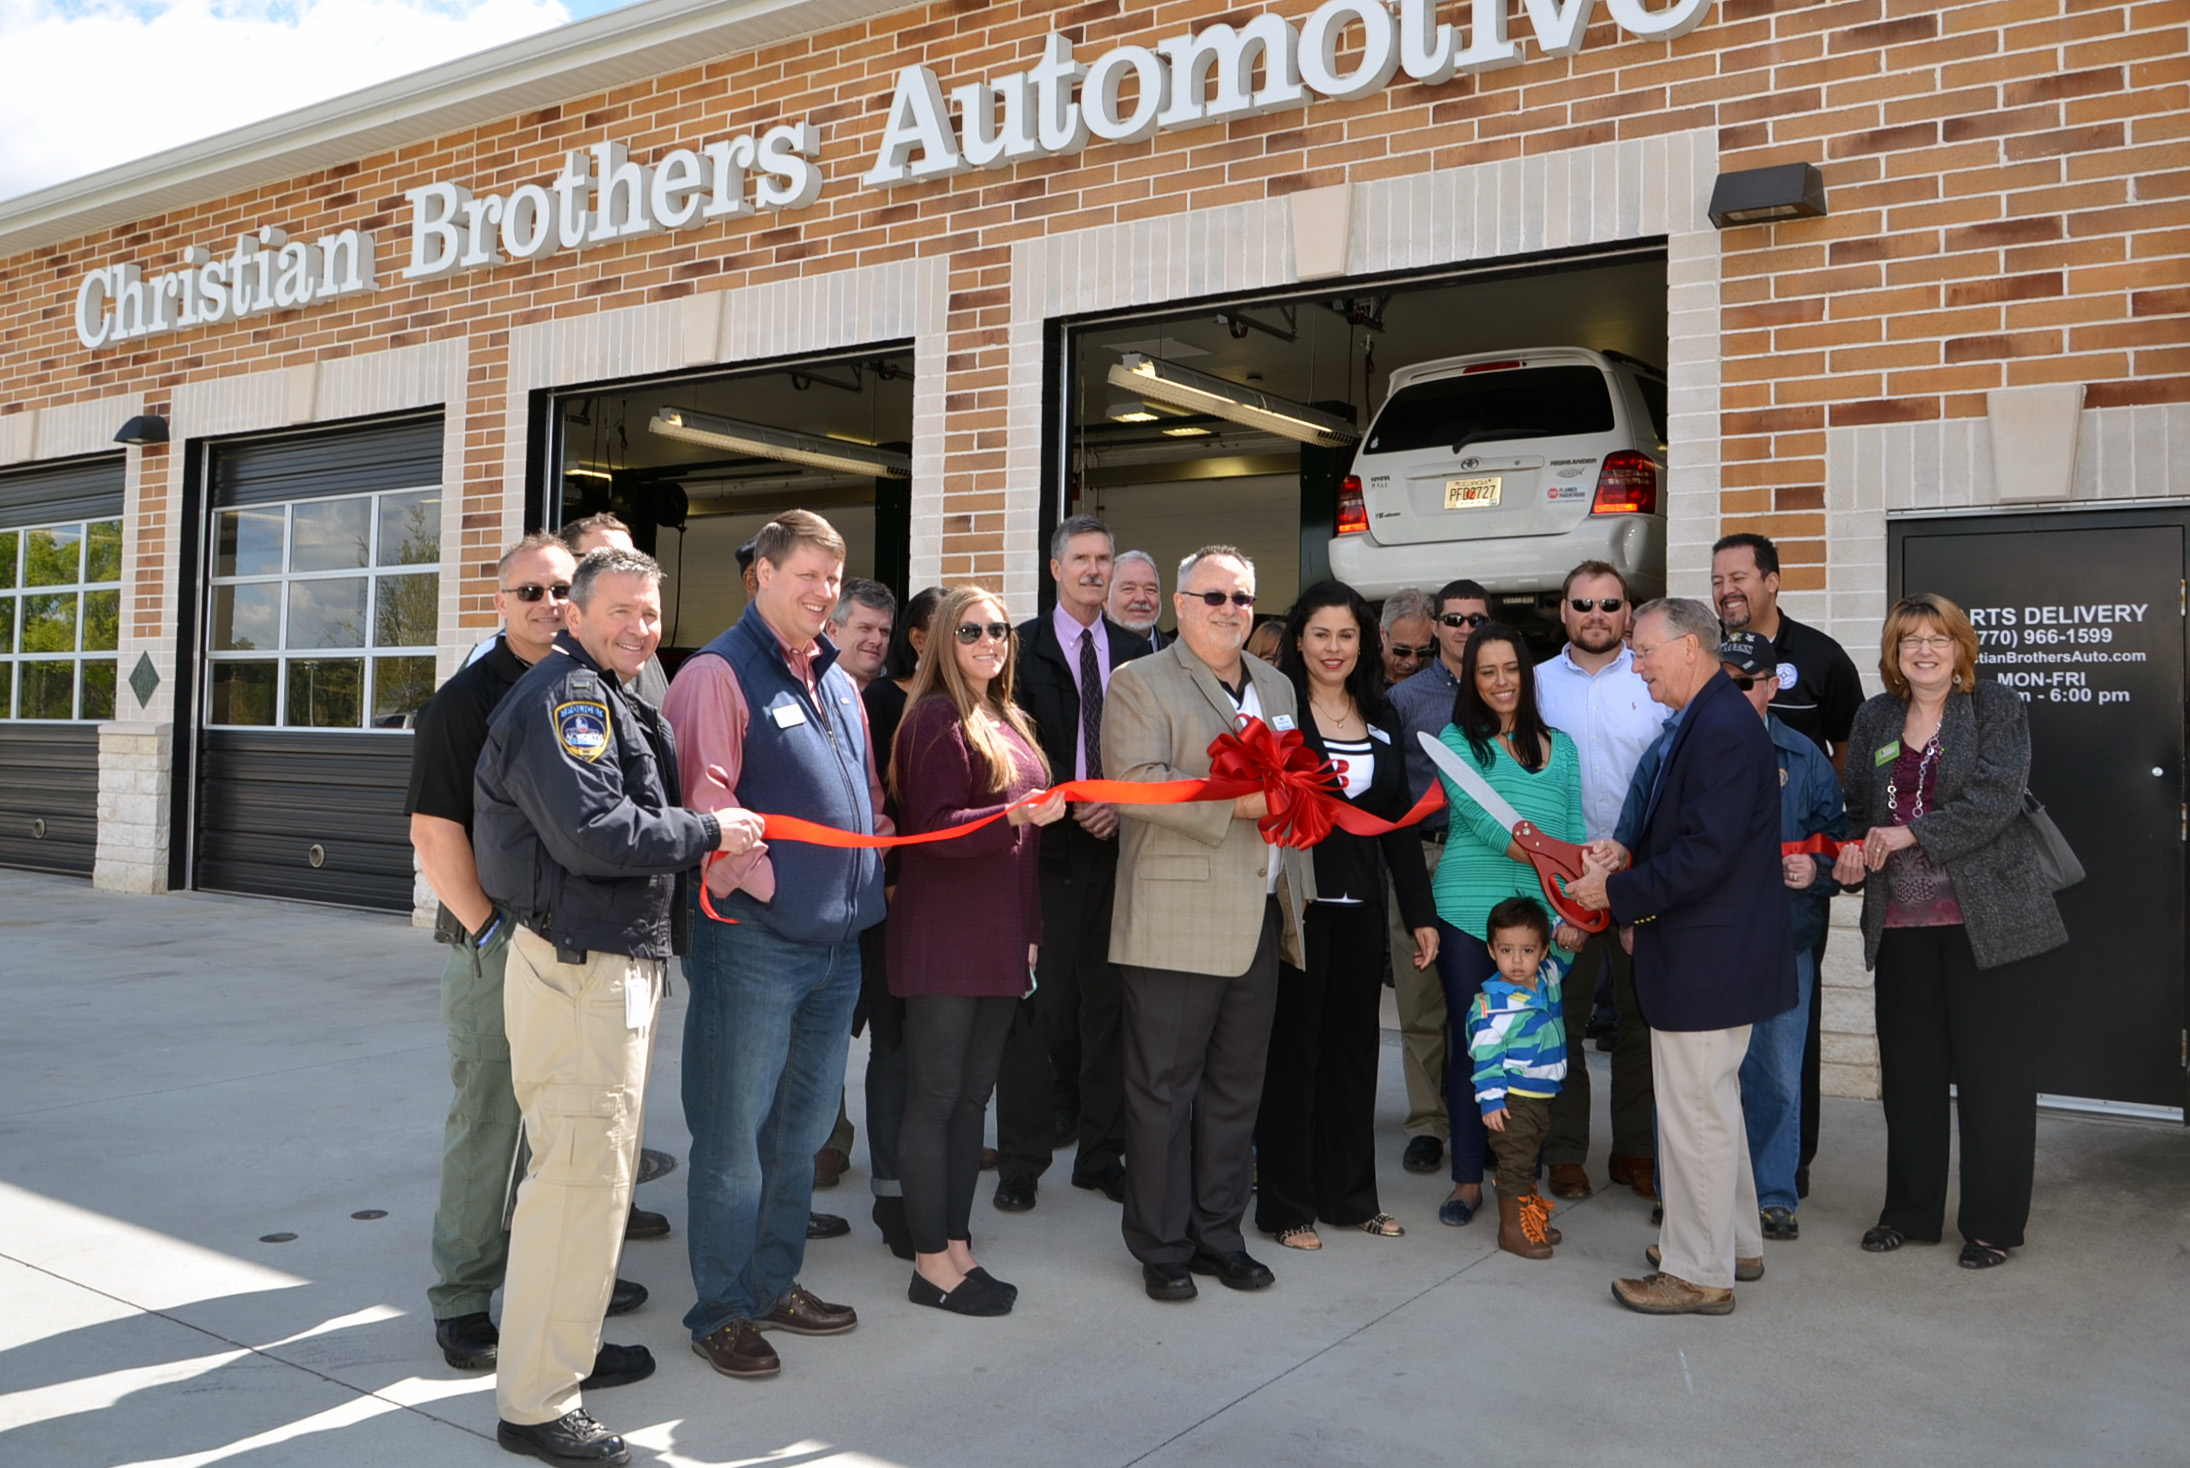 Christian Brothers Auto Ribbon Cutting2